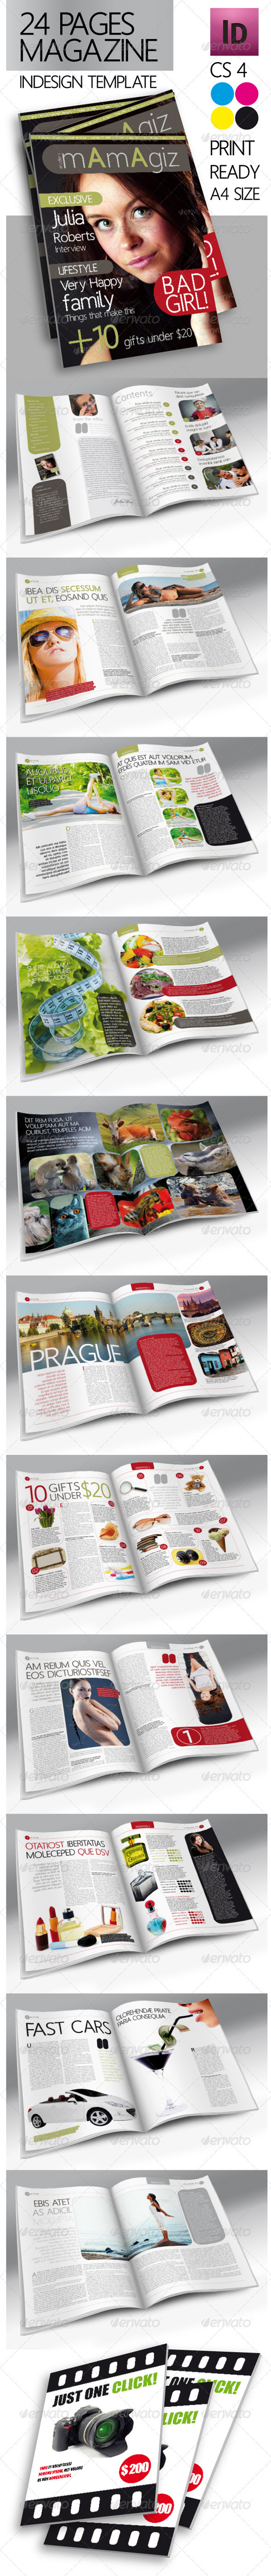 24 Pages Modern Magazine InDesign Template - Magazines Print Templates